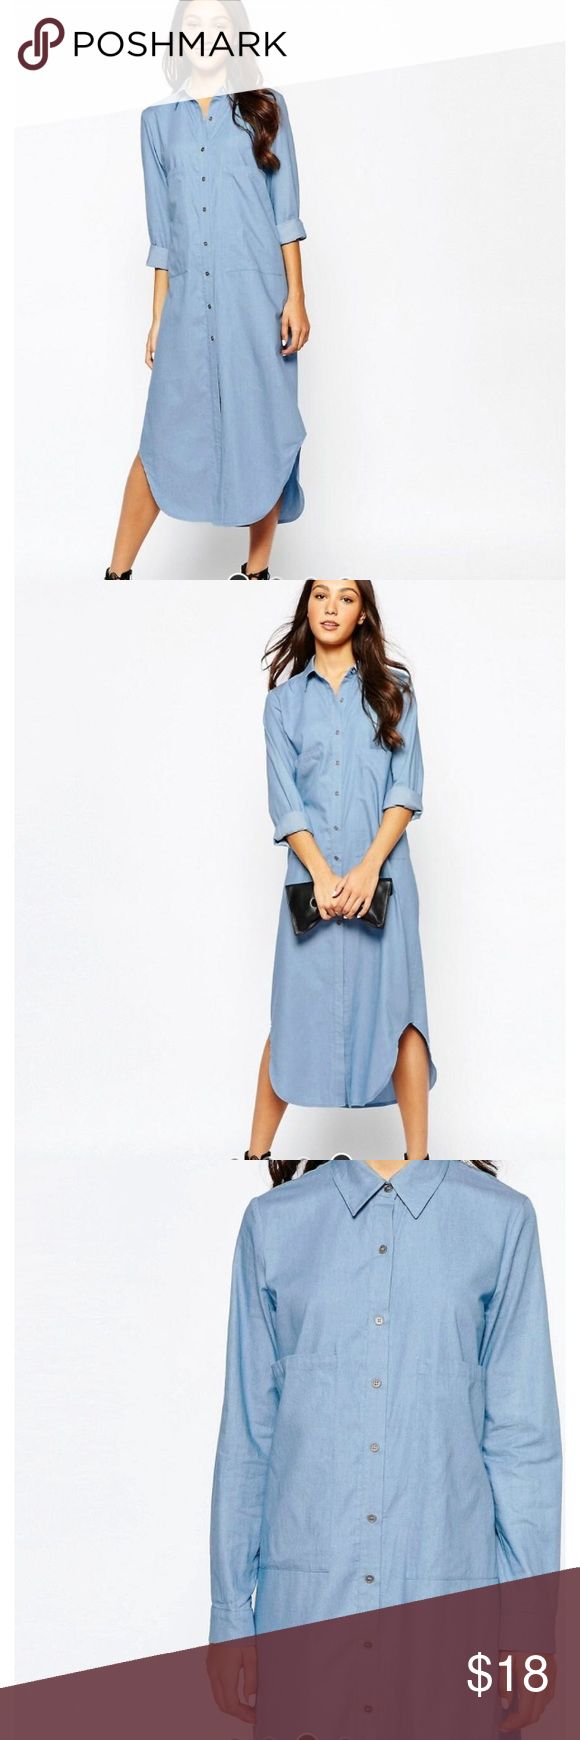 Asos/Never fully Dresses Chambray Maxi Shirt Dress Never worn, adorable chambray dress with over-sized front pockets.  Not a stitch wrong with it! 100% cotton. ASOS Dresses Maxi